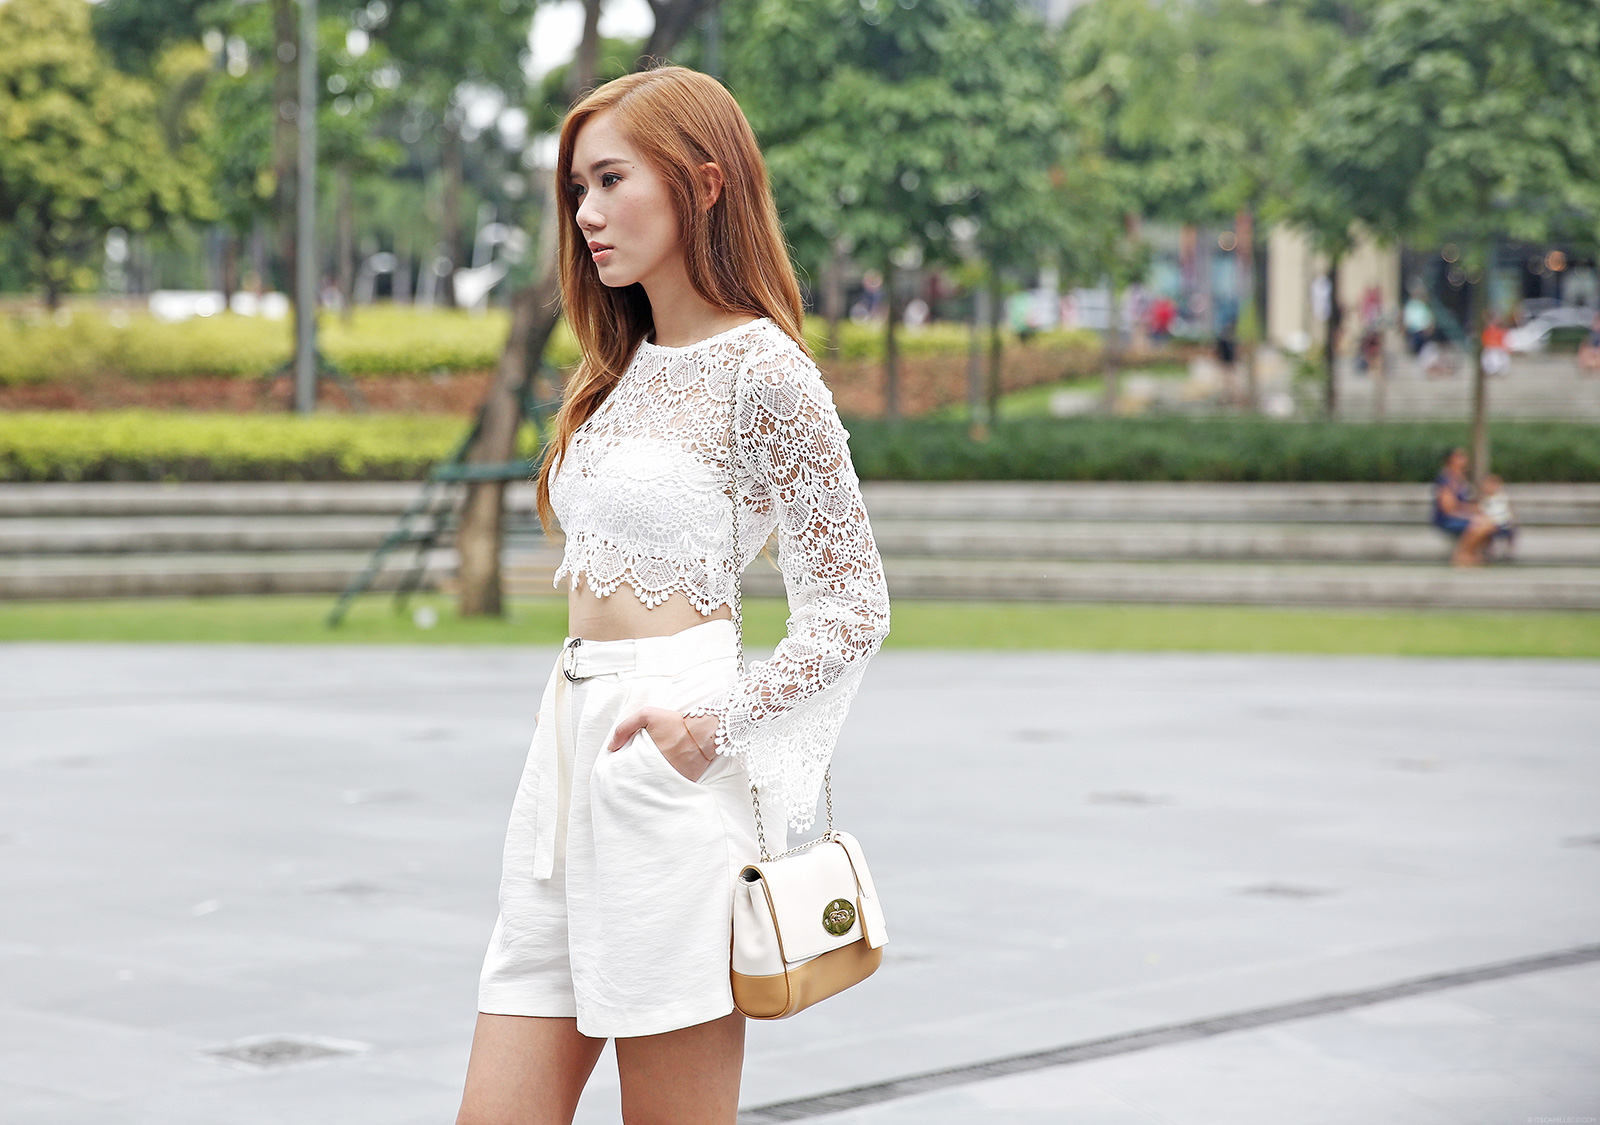 Lalaland Fashion lace top, Mango shorts, Asos heels, Mulberry bag | www.itscamilleco.com